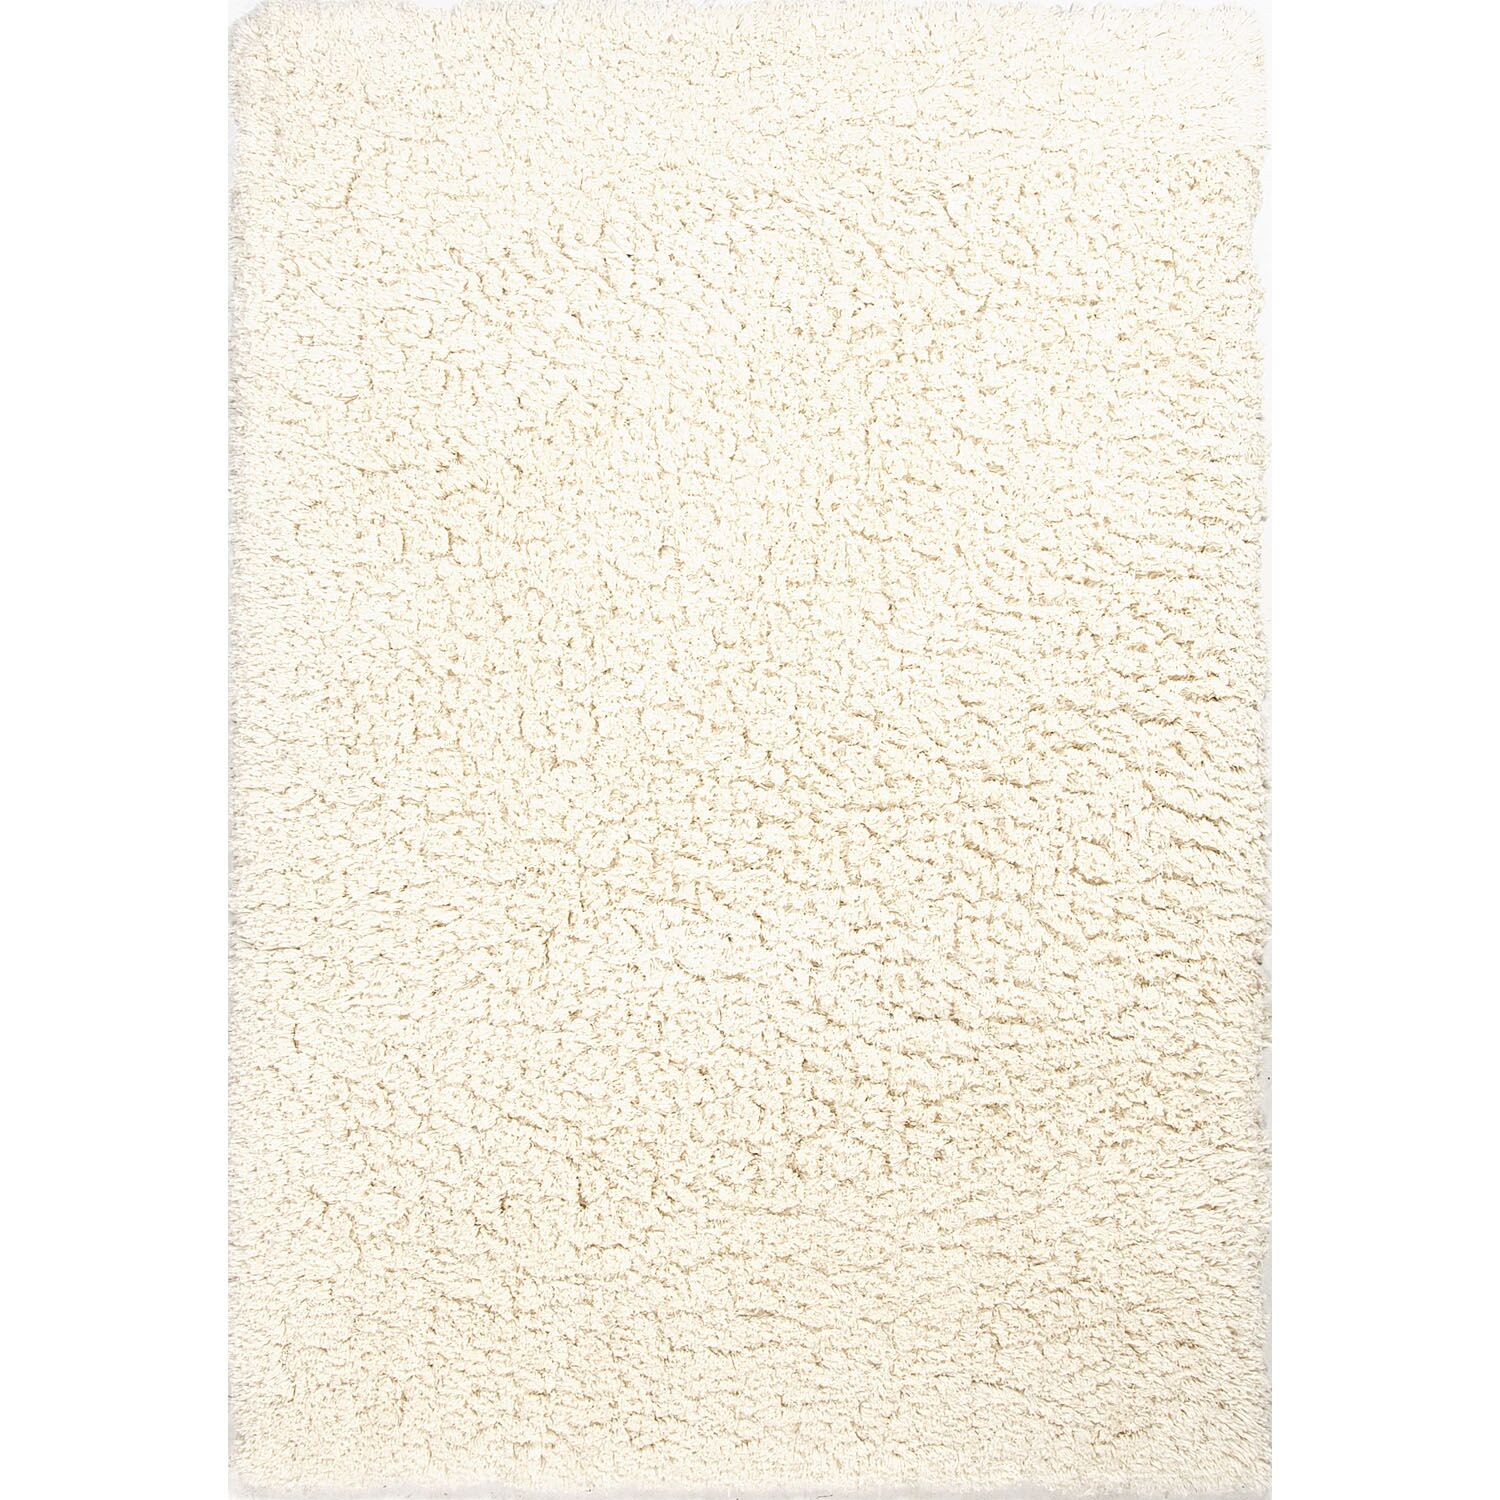 Beals Ivory & White Area Rug Rug Size: Rectangle 8' x 10'